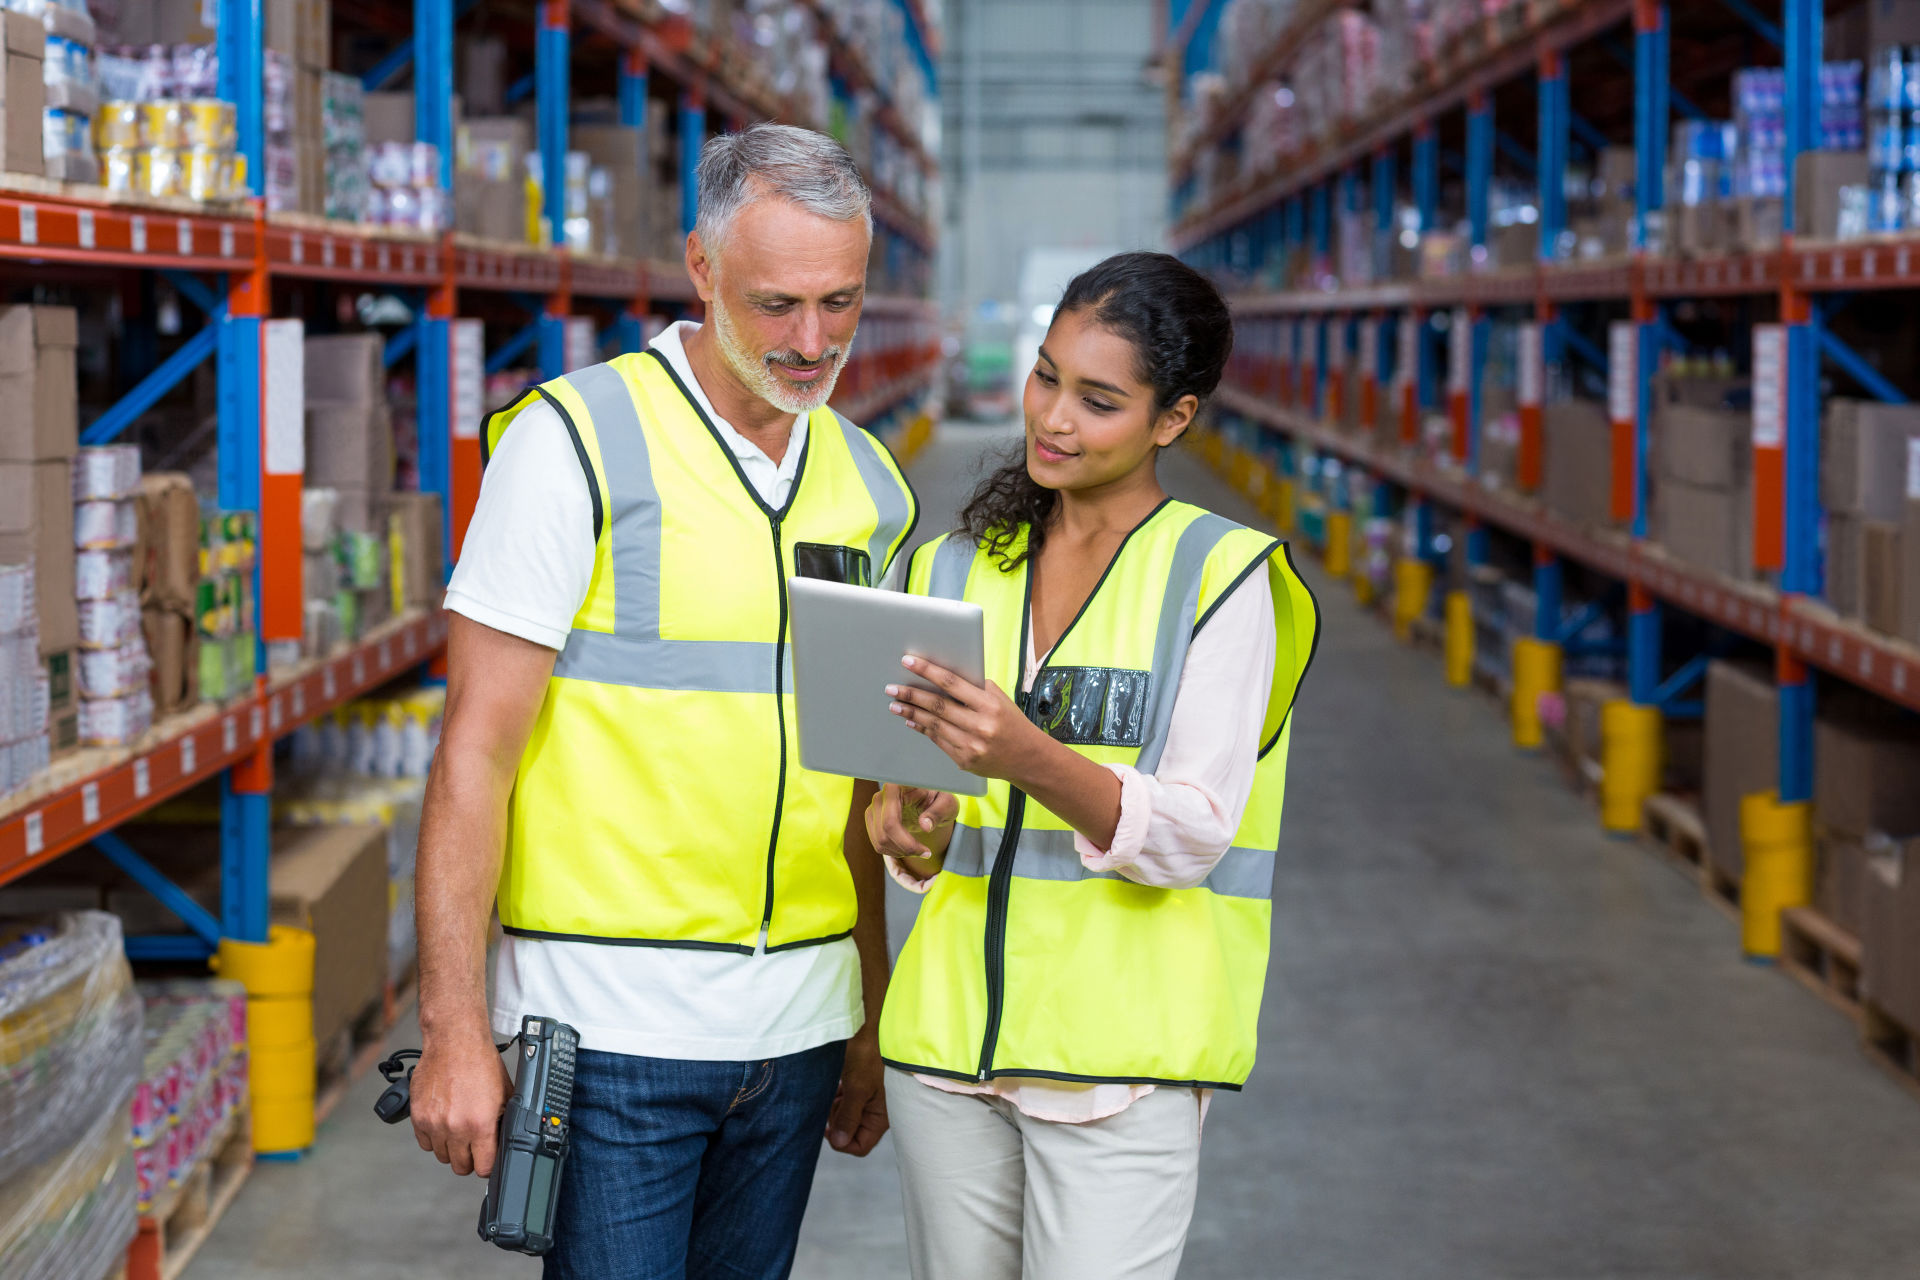 Improve Accuracy With Warehouse Technology